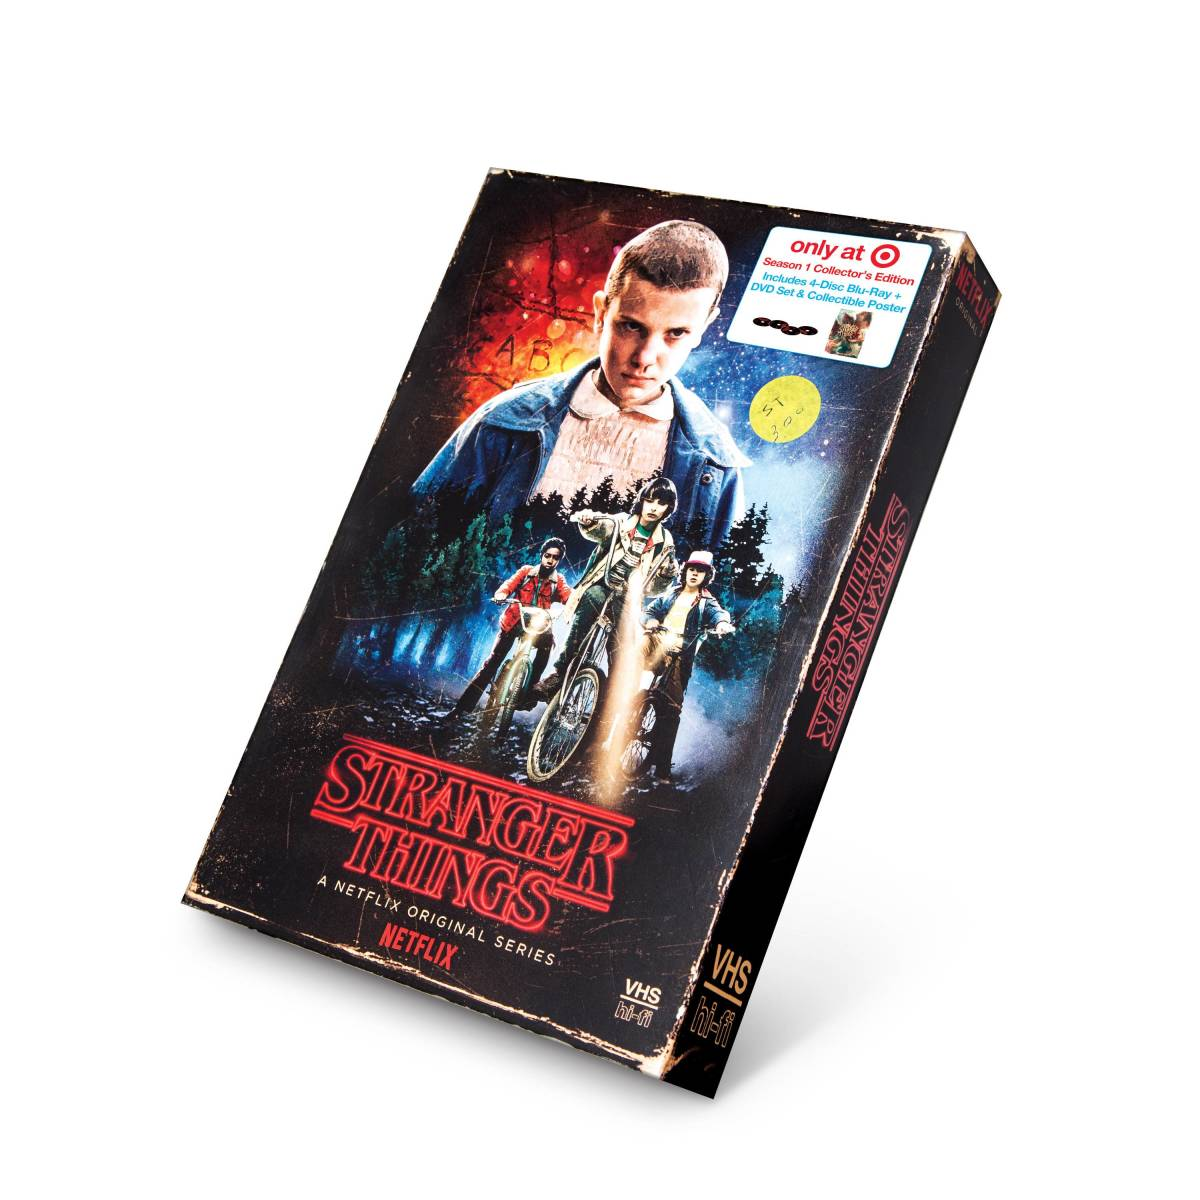 Stranger Things Season 1 blu-ray special edition VHS style cover.